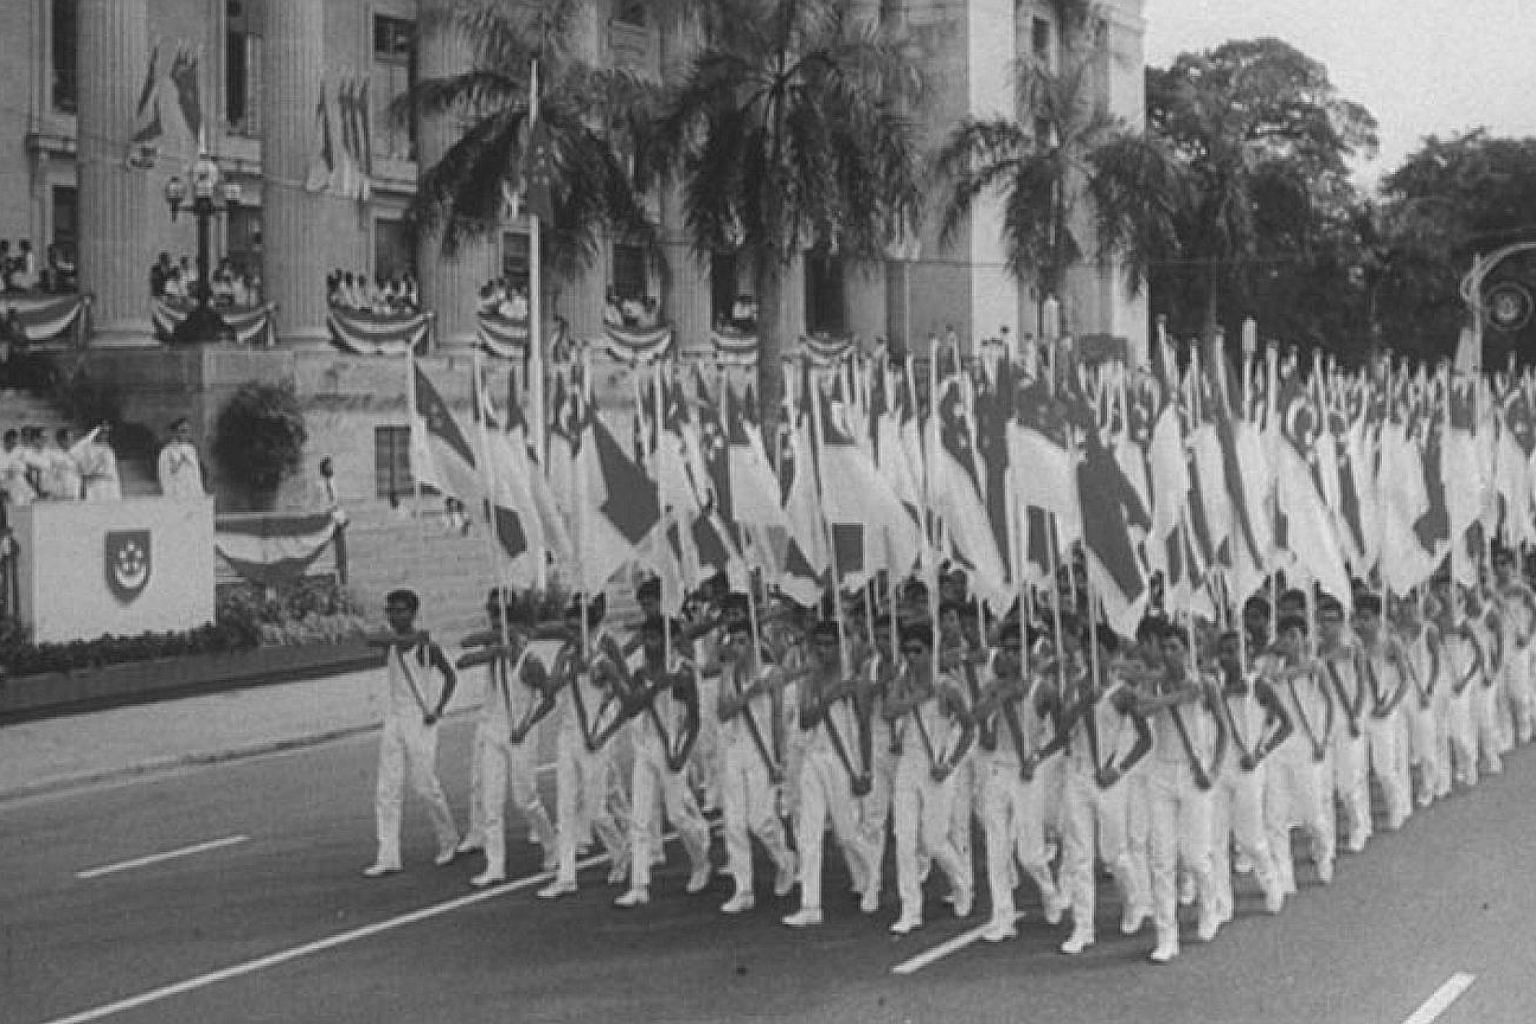 Singapore's first National Day Parade, at the Padang in 1966. In the early 1900s, people made a living growing and selling pineapples. Indian women carrying pails of latex on their heads in a rubber estate in the 1900s.